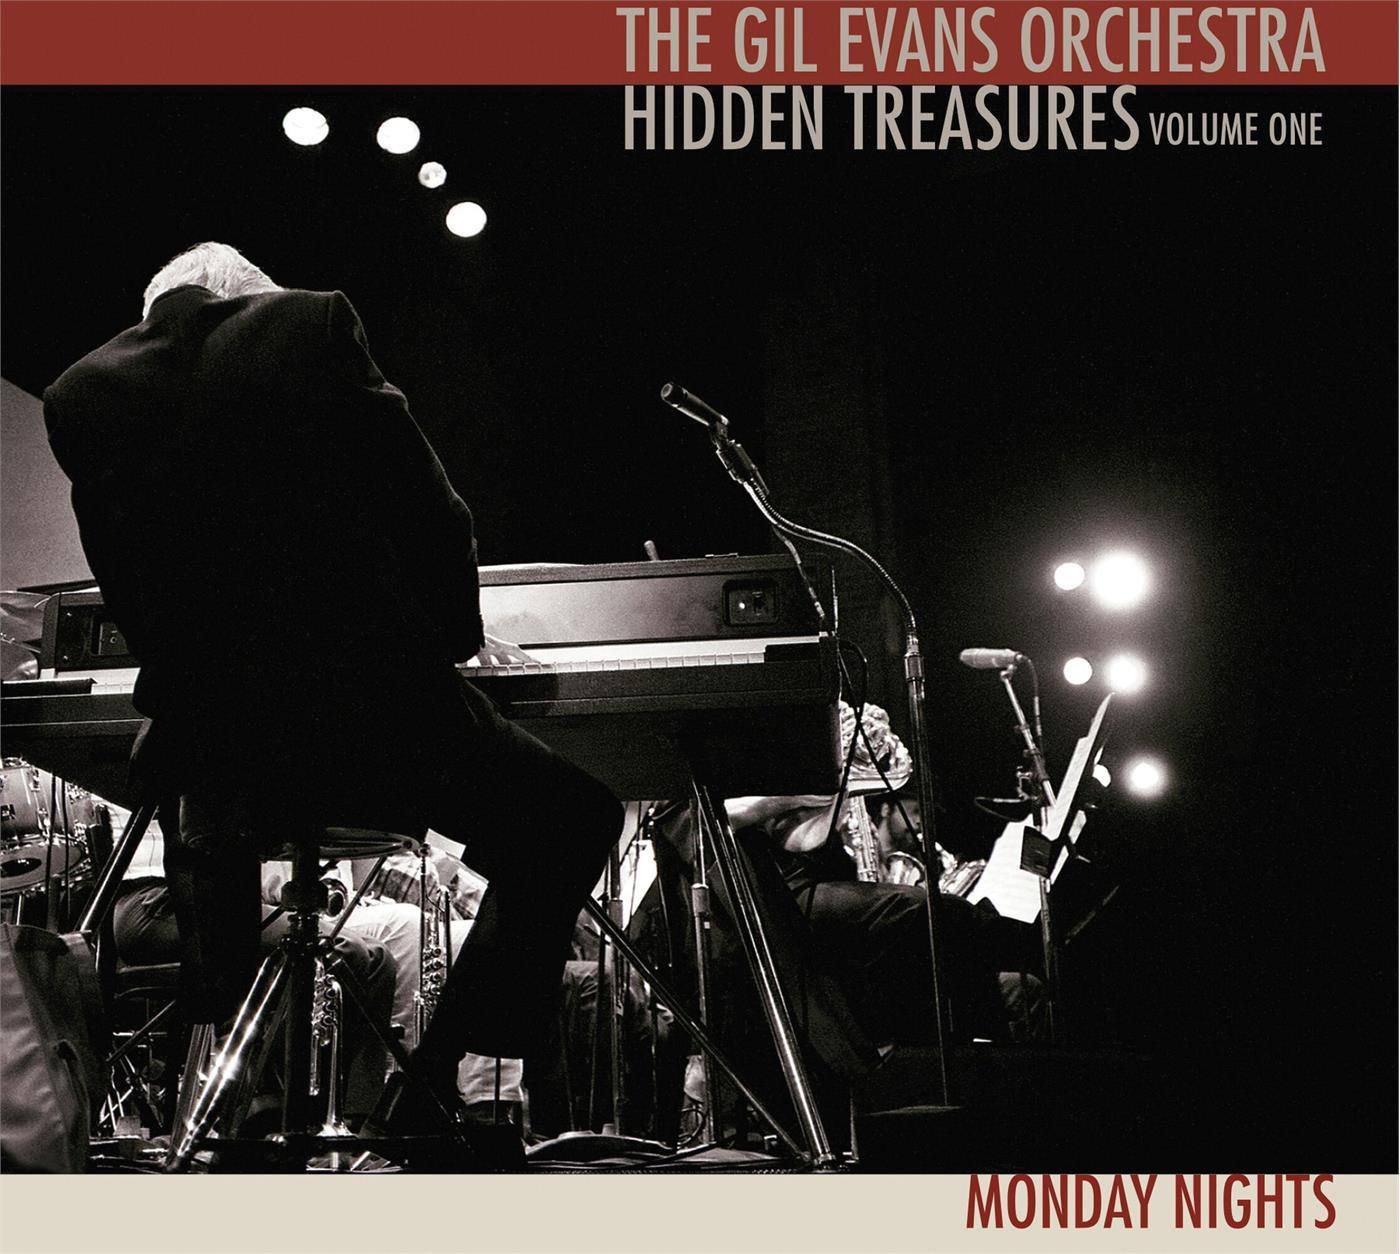 GEO34751 Deko Music  Gil Evans Orchestra Hidden Treasures 1: Monday Nights (2LP)